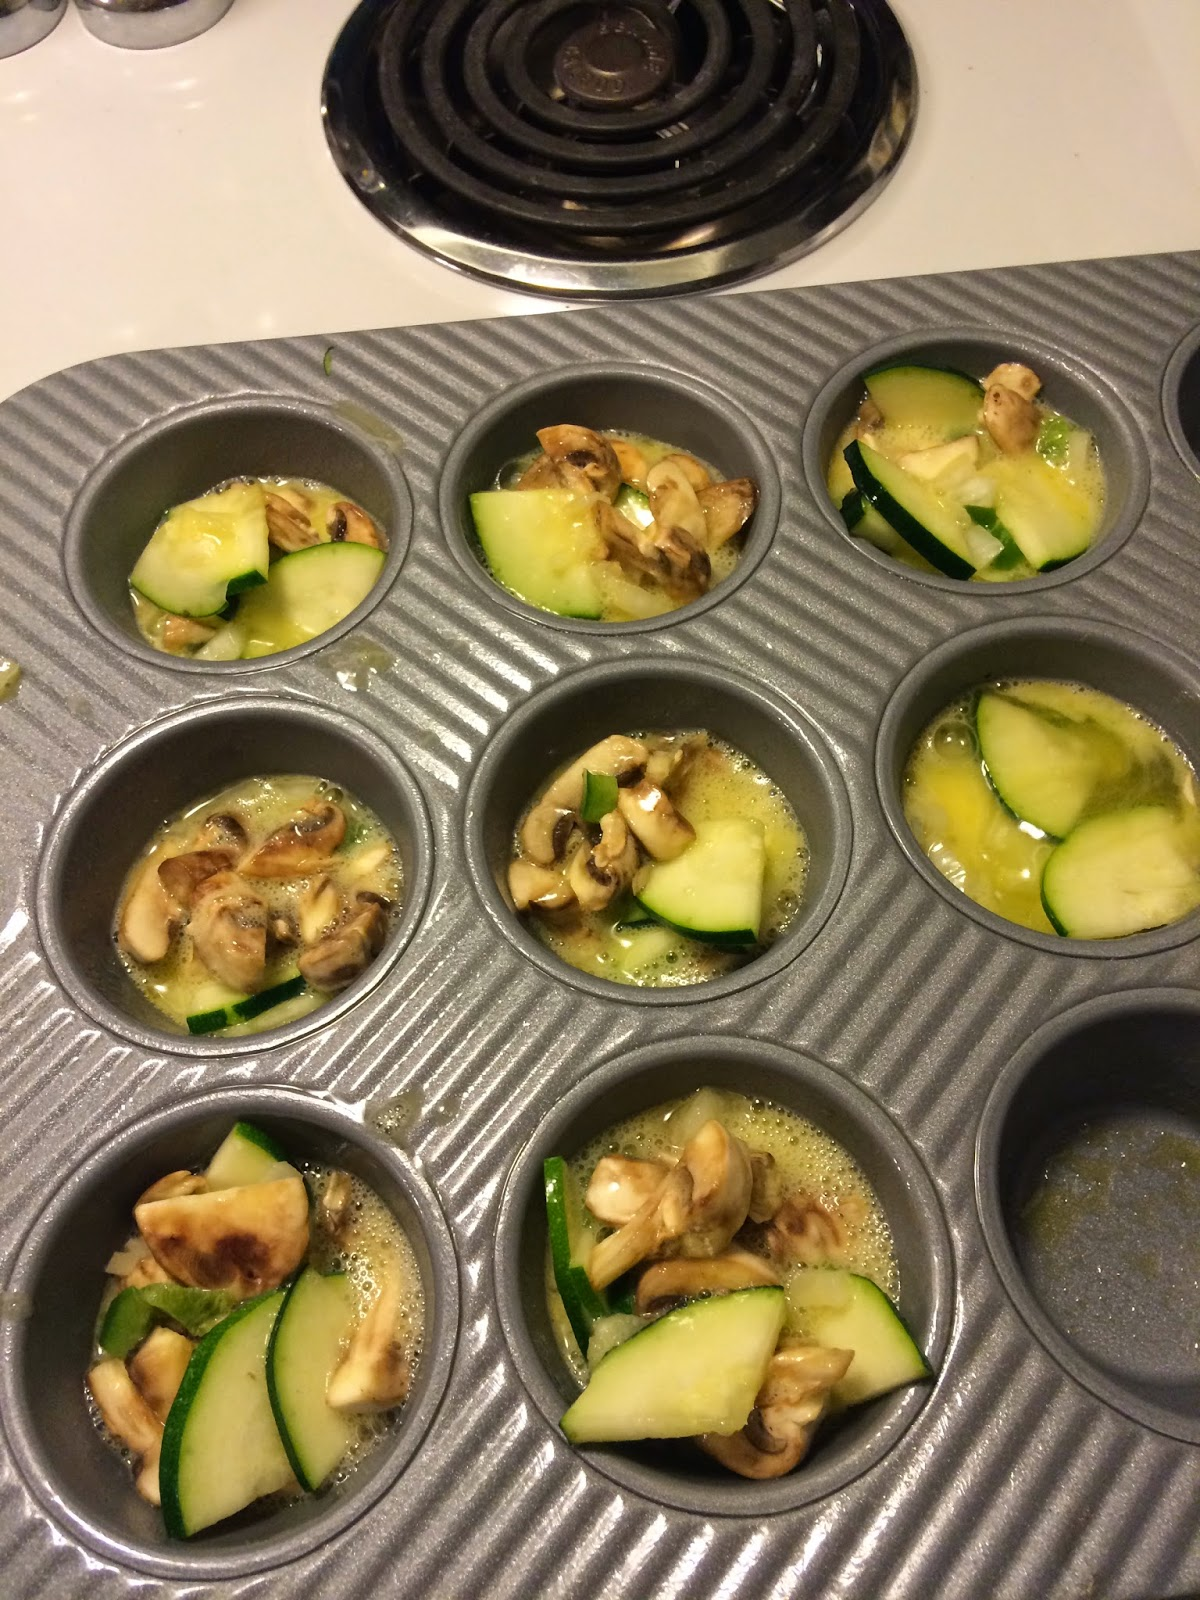 Egg Muffin with veggies, becoming your personal best healthy breakfast